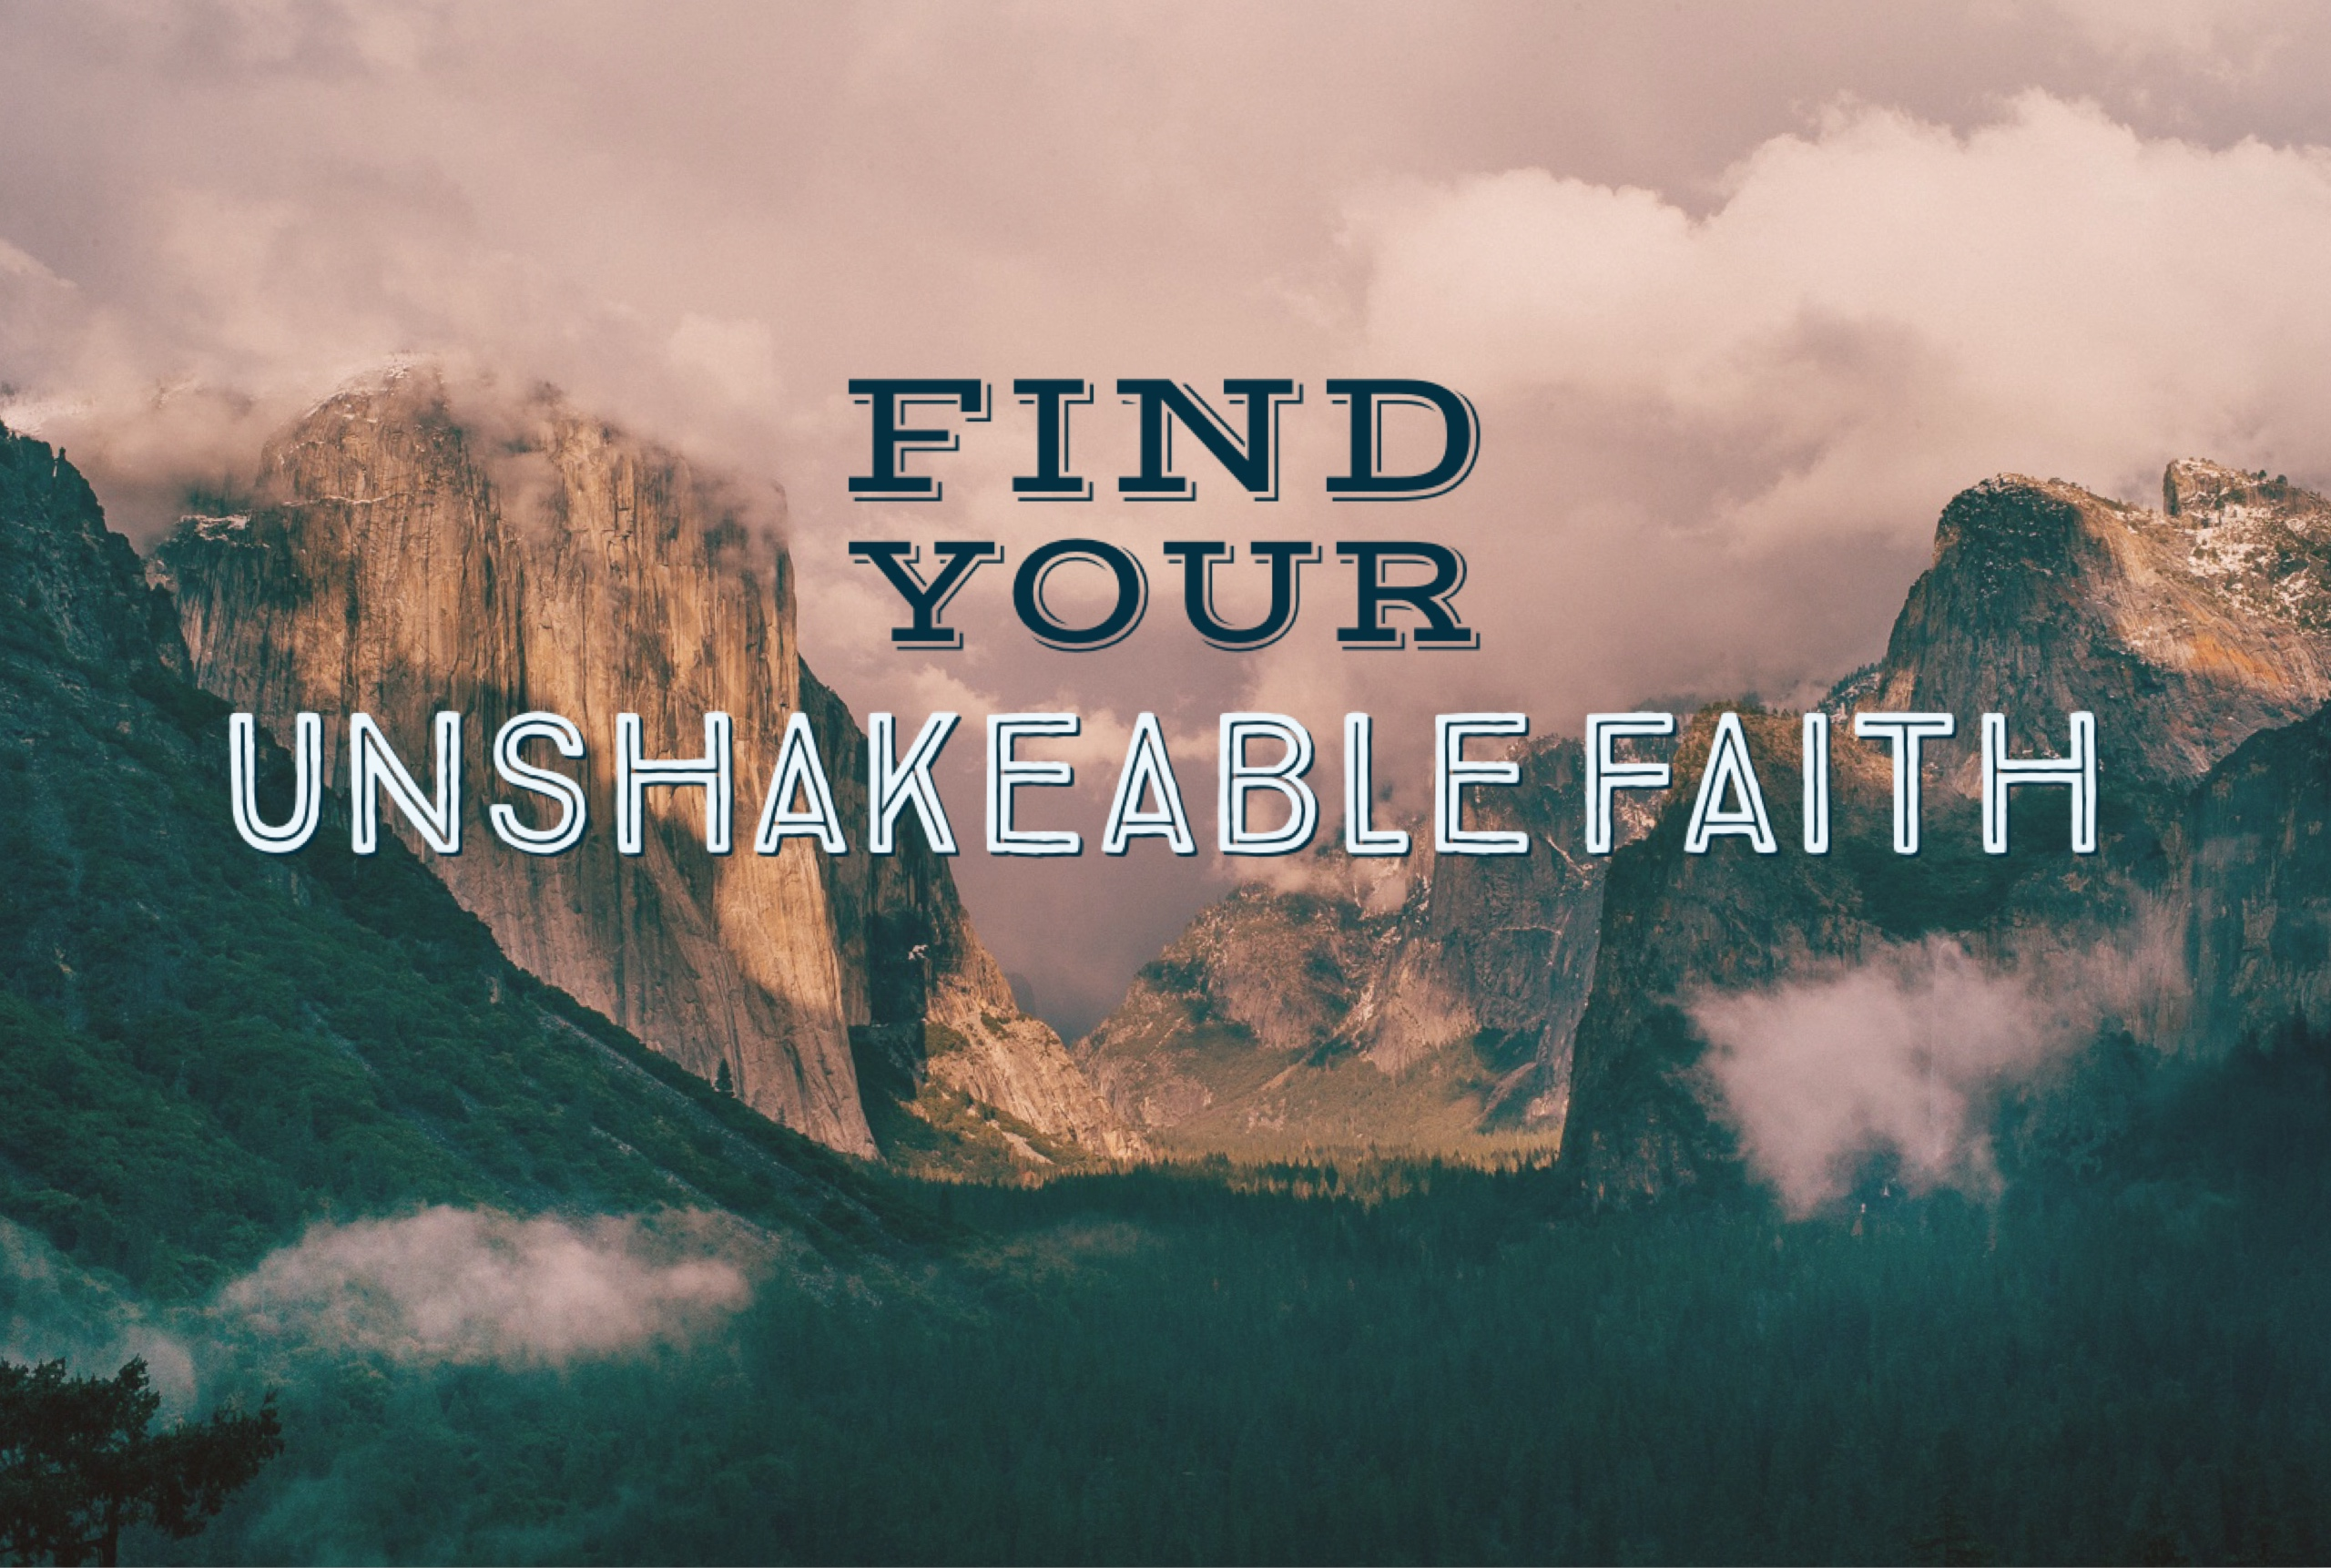 Unshakeable-faith